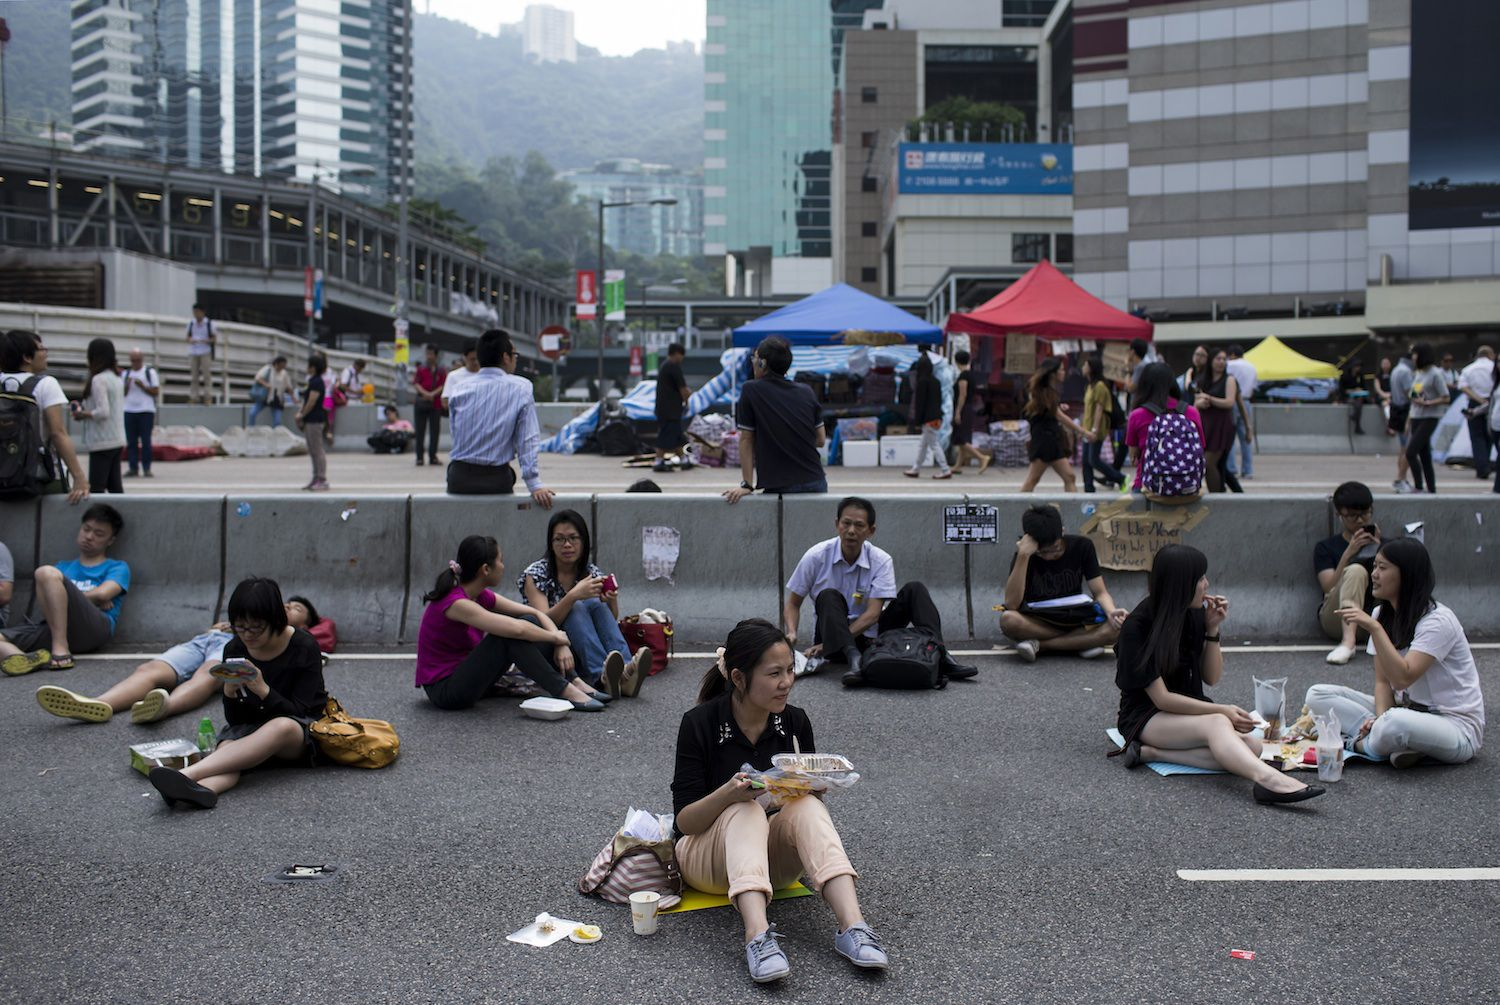 A woman takes her lunch while sitting on a highway, part of an area blocked off by protesters of the Occupy Central movement, in Hong Kong October 7, 2014. Pro-democracy demonstrations in Hong Kong rolled into early Tuesday with hundreds of students remaining camped out in the heart of the city after more than a week of rallies and behind-the-scenes talks showing modest signs of progress. REUTERS/Tyrone Siu (CHINA - Tags: POLITICS CIVIL UNREST FOOD) - RTR497NO